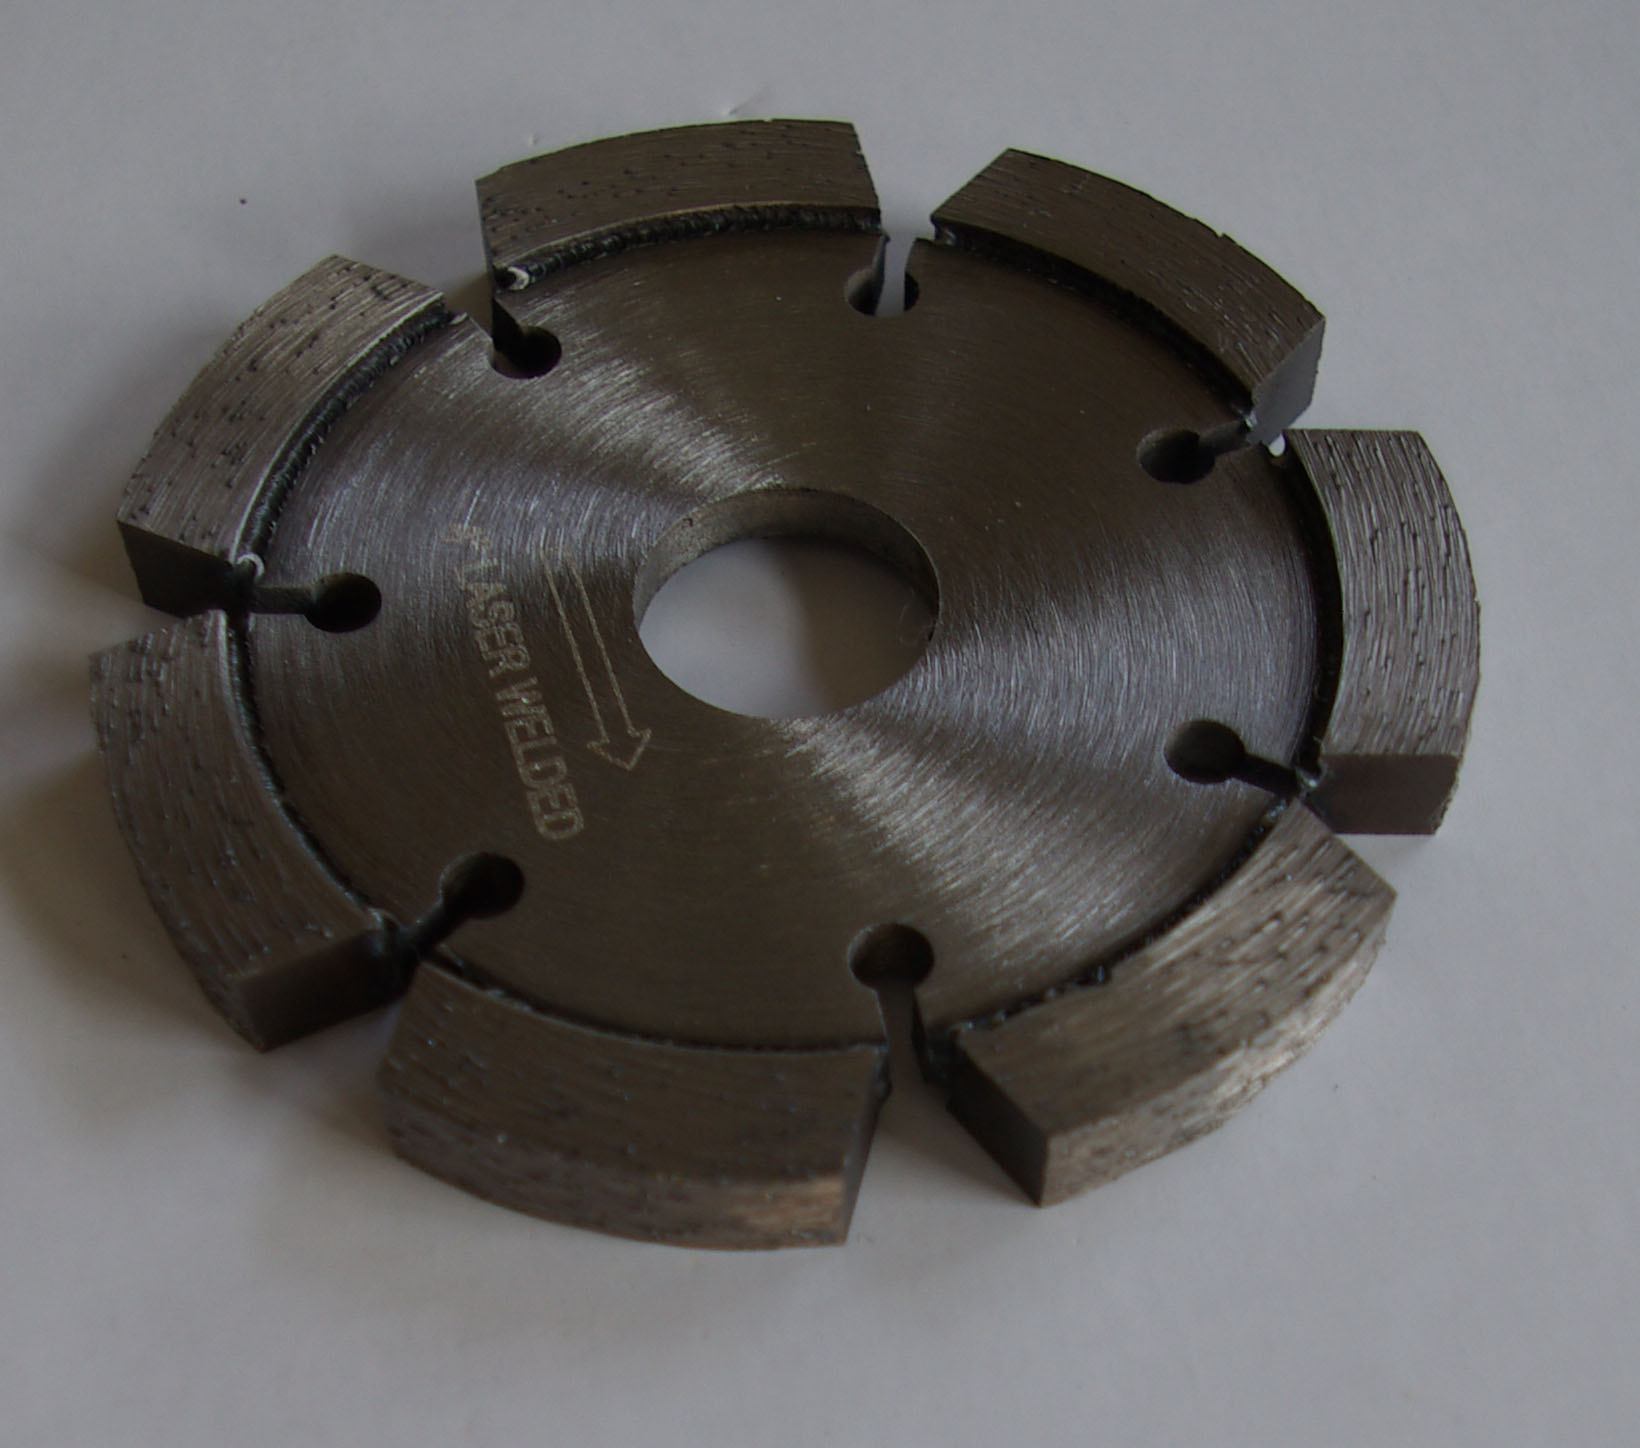 4inch normal type tuck point blade